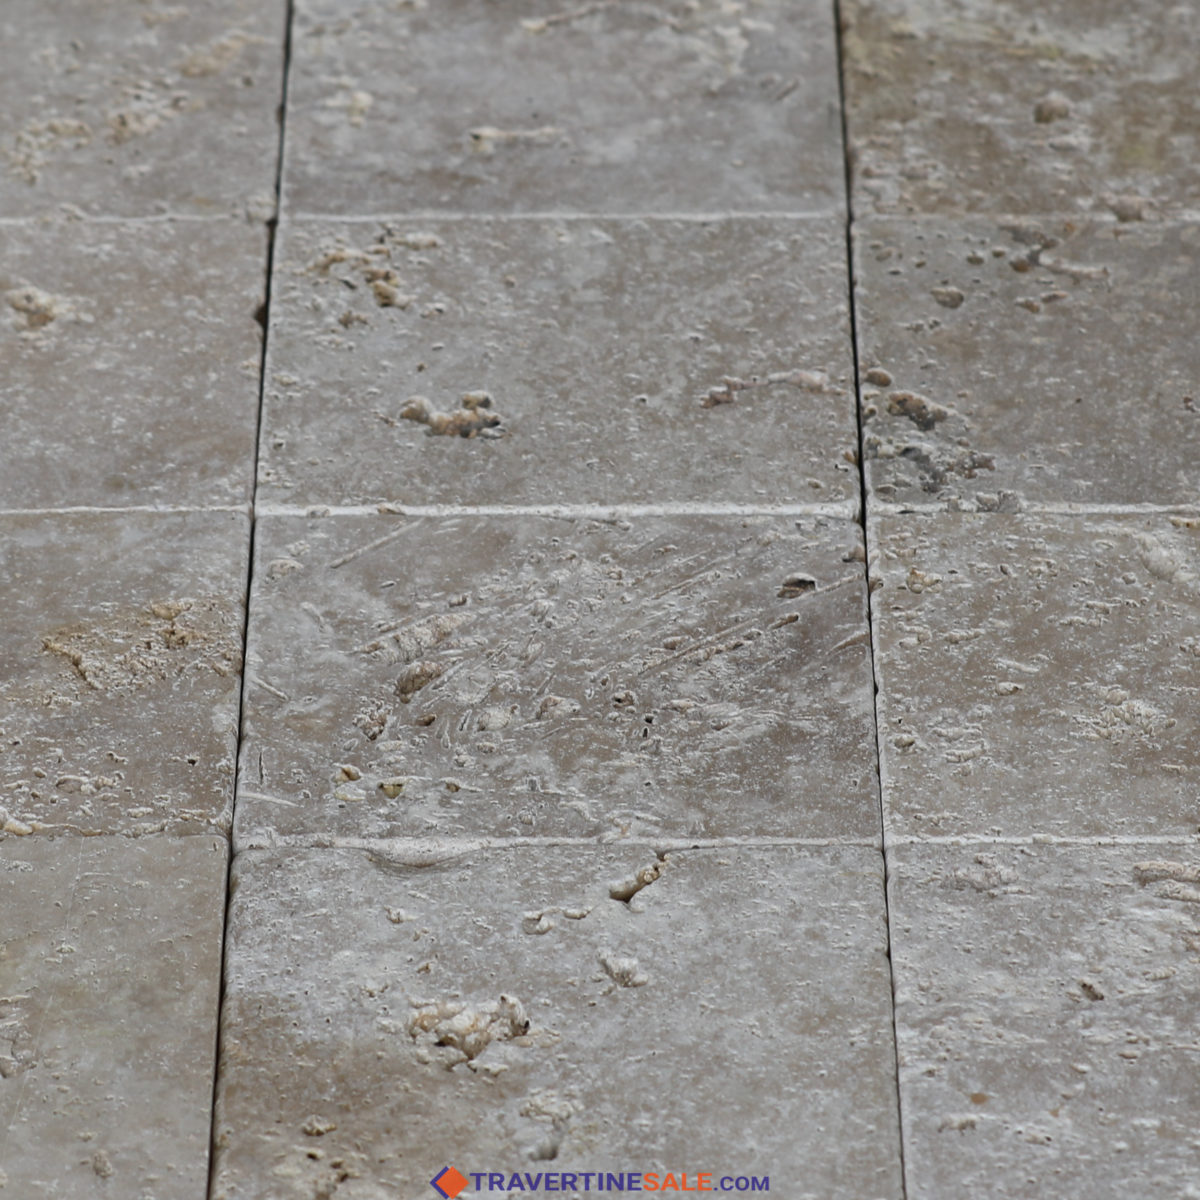 commercial travertine tiles with tumbled finish and light beige background